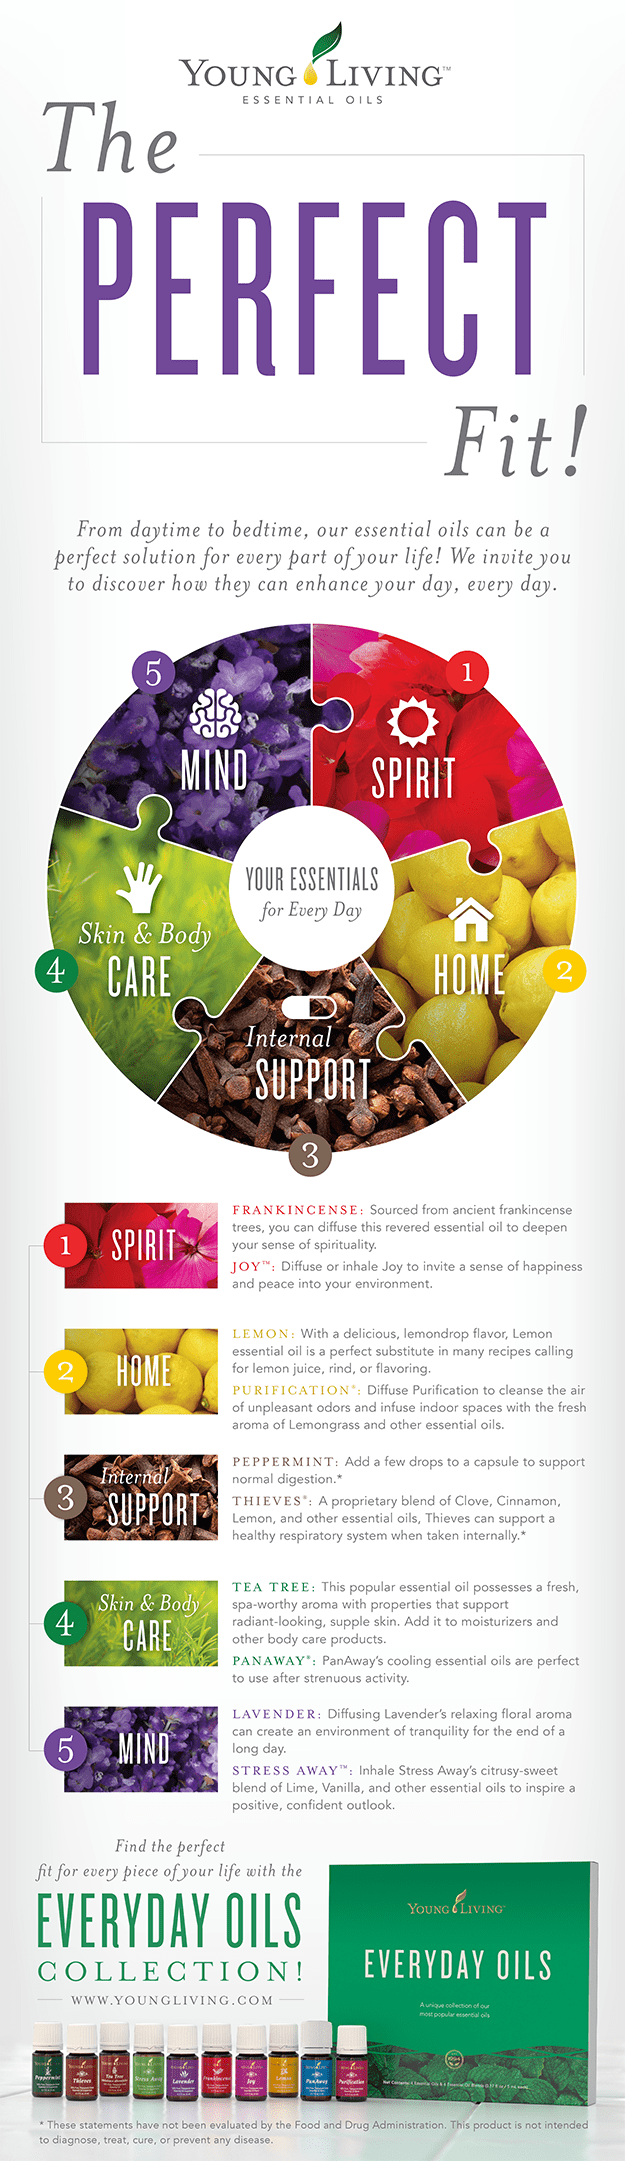 Everyday Oils from Young Living